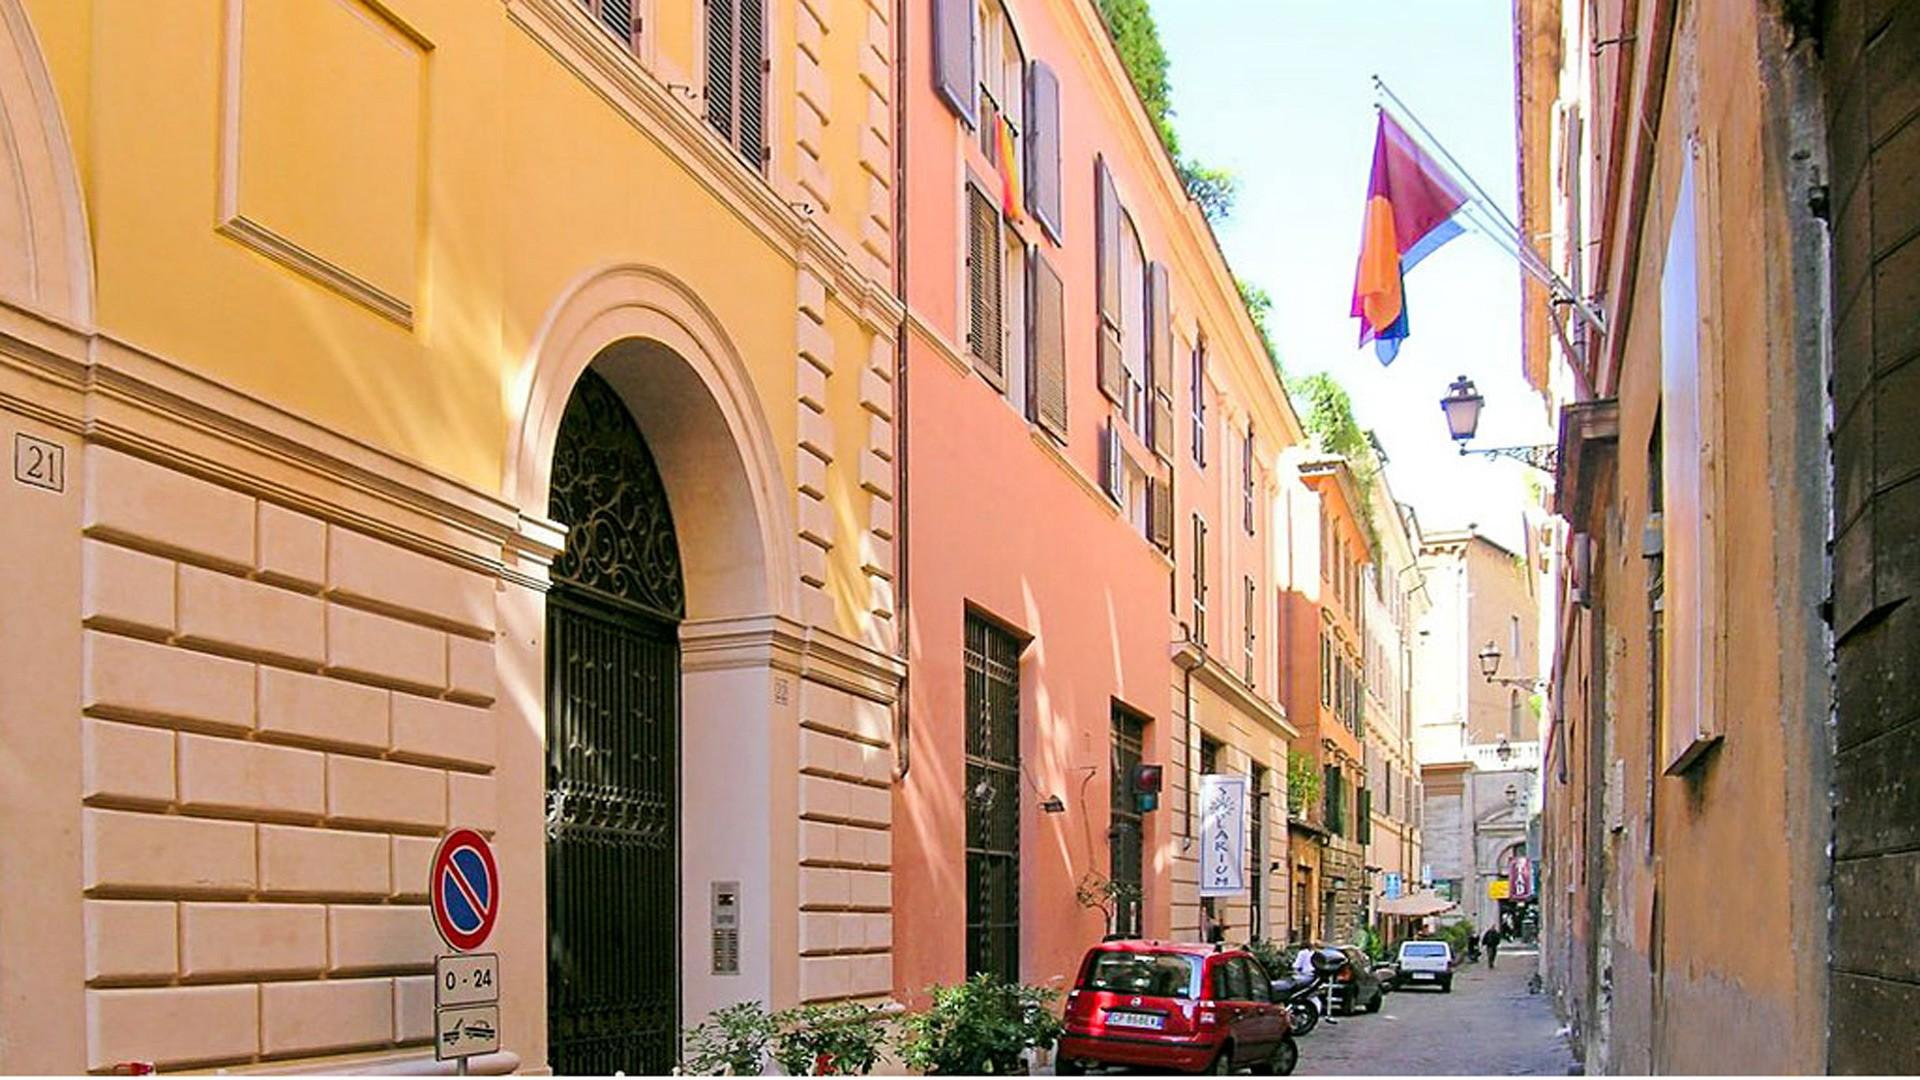 Via di San Giacomo carries only local traffic. Even residents must have a permit to travel here.